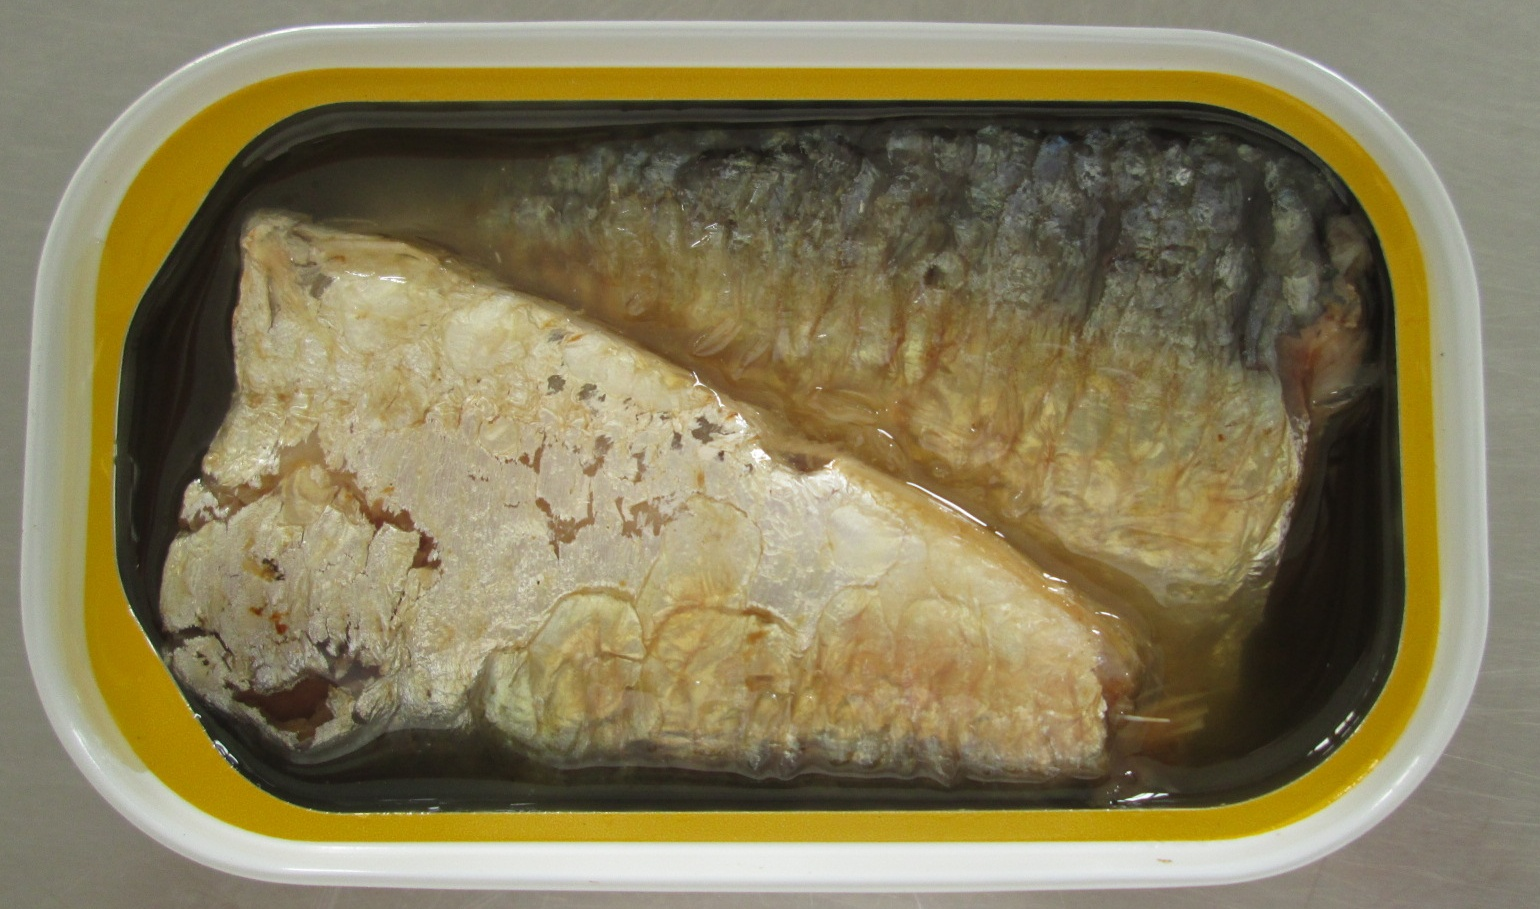 311#, 125g/90g, Easy-open/Ring-pull, Painting can, Club Can, Canned Sardine in Vegetable Oil,froze